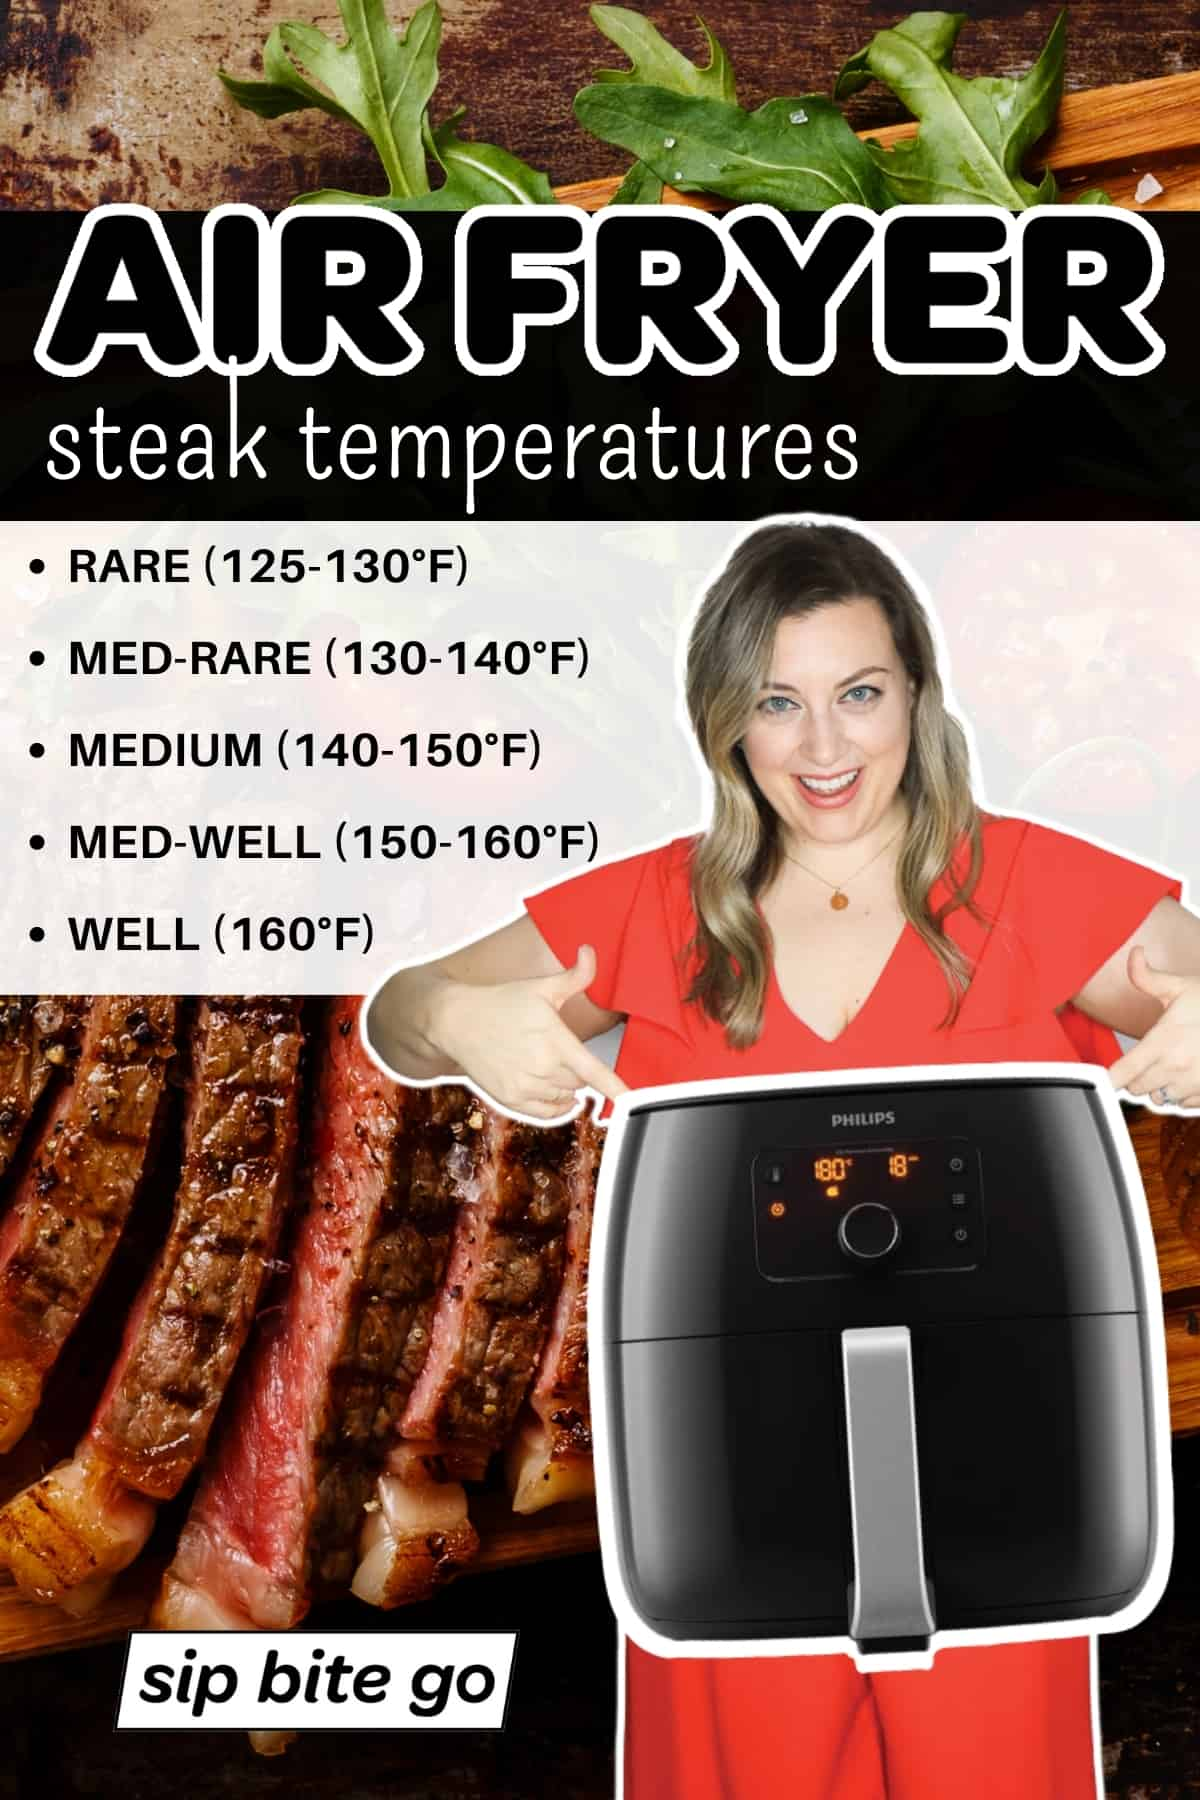 Air Fryer Steak Temperatures Chart Infographic With Text And air fryer machine and woman.